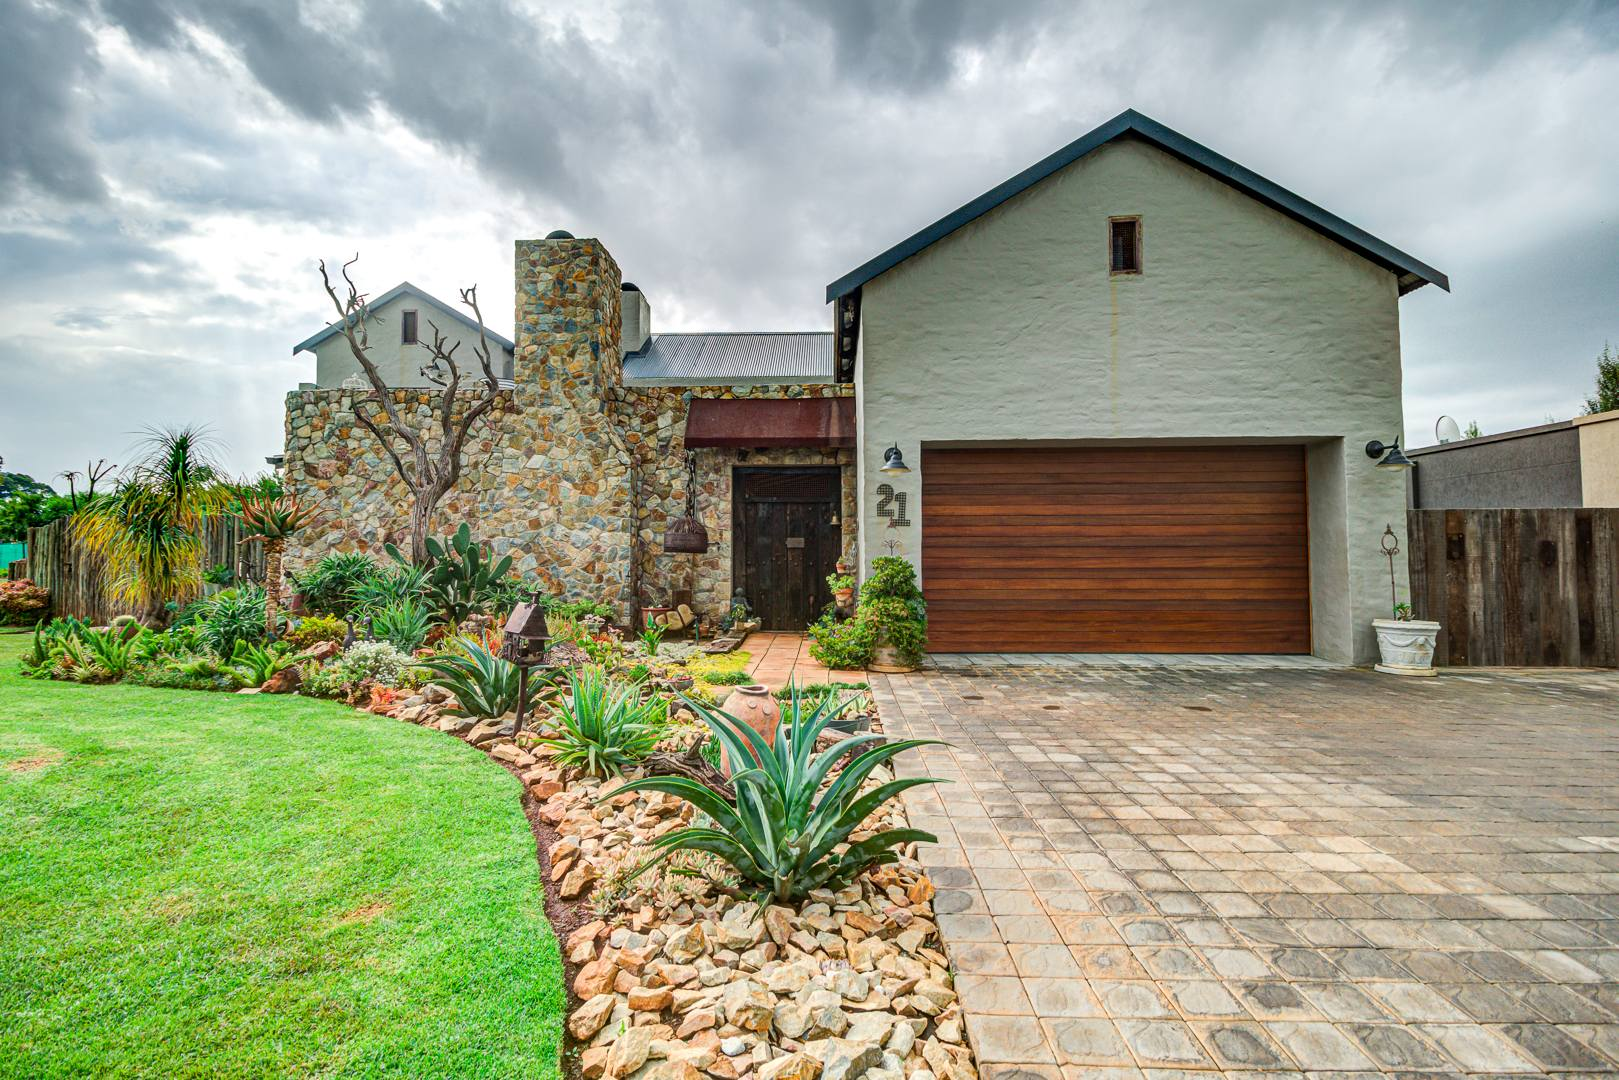 4 Bedroom House For Sale in Witfontein AH